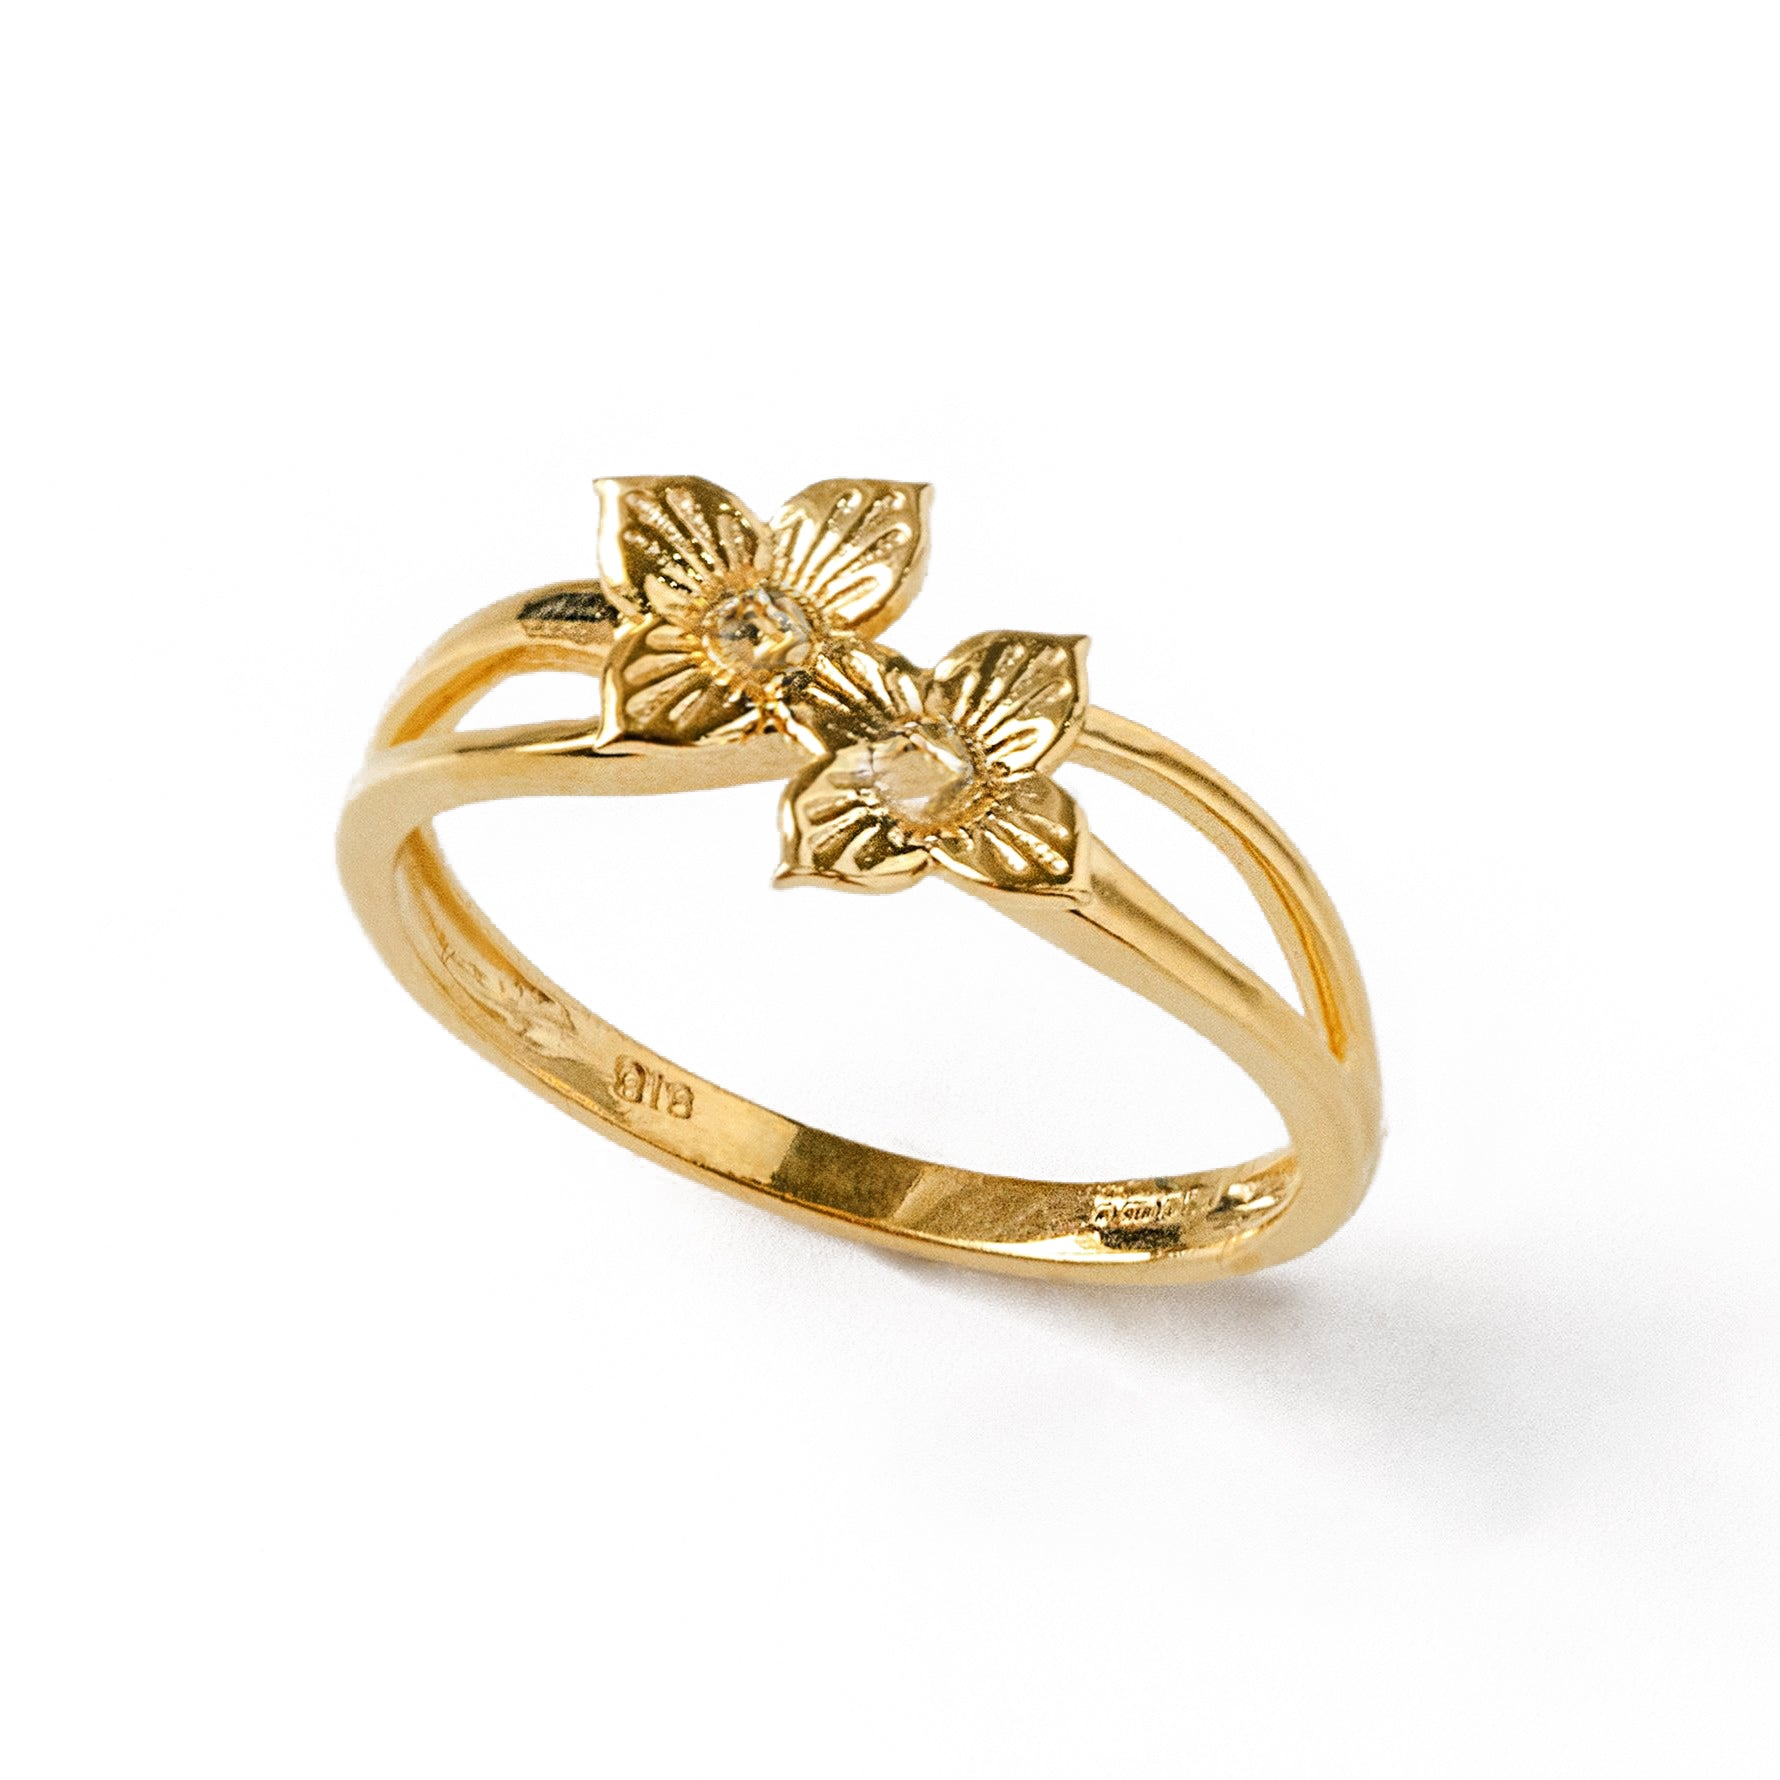 22ct-gold-dress-ring-with-flowers